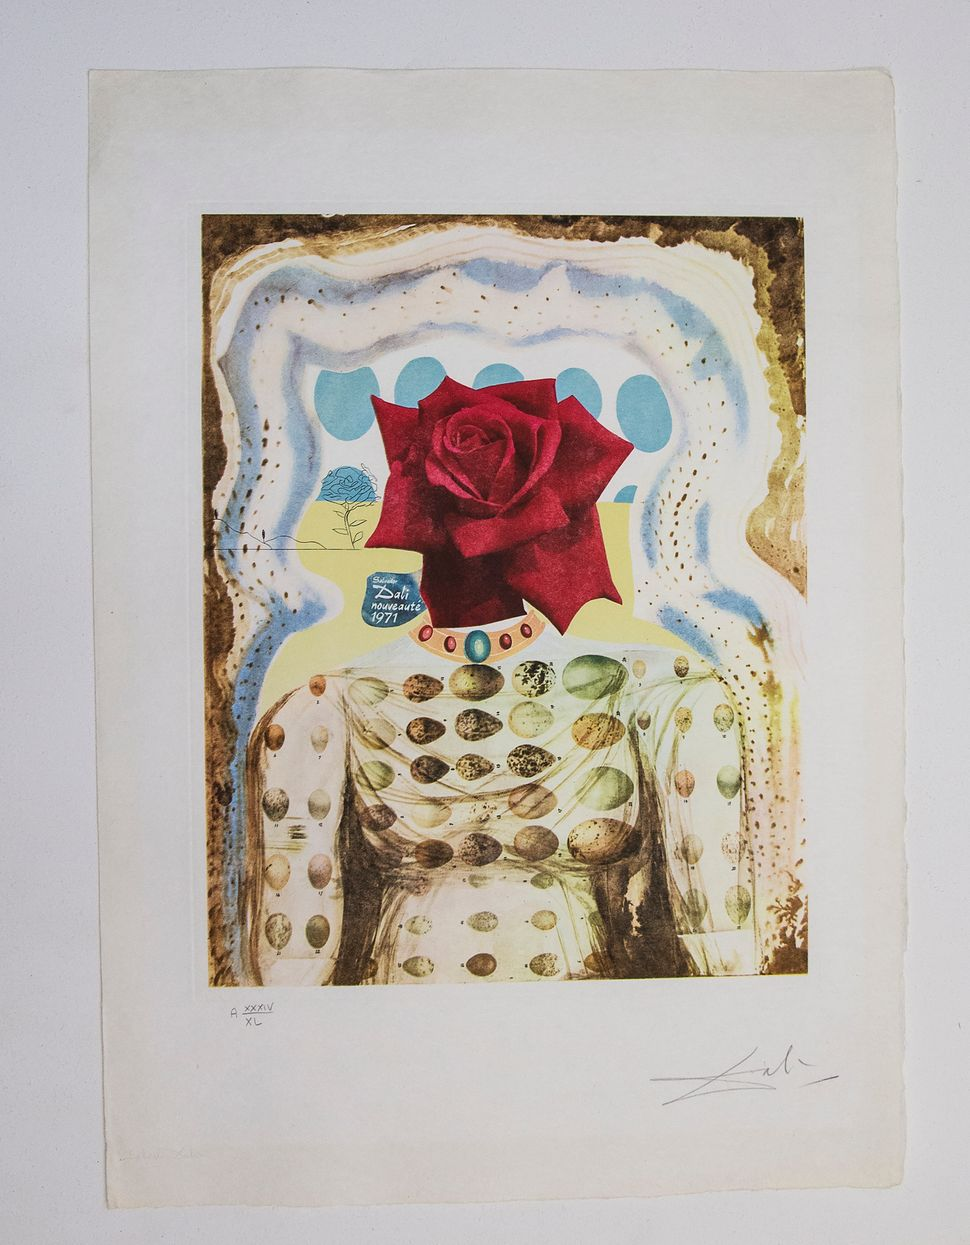 Surrealistic Flower Girl, 1971, Memories of Surrealism, Collection of Carole and Alex Rosenberg, Dali at NAC, Photo by Andrew